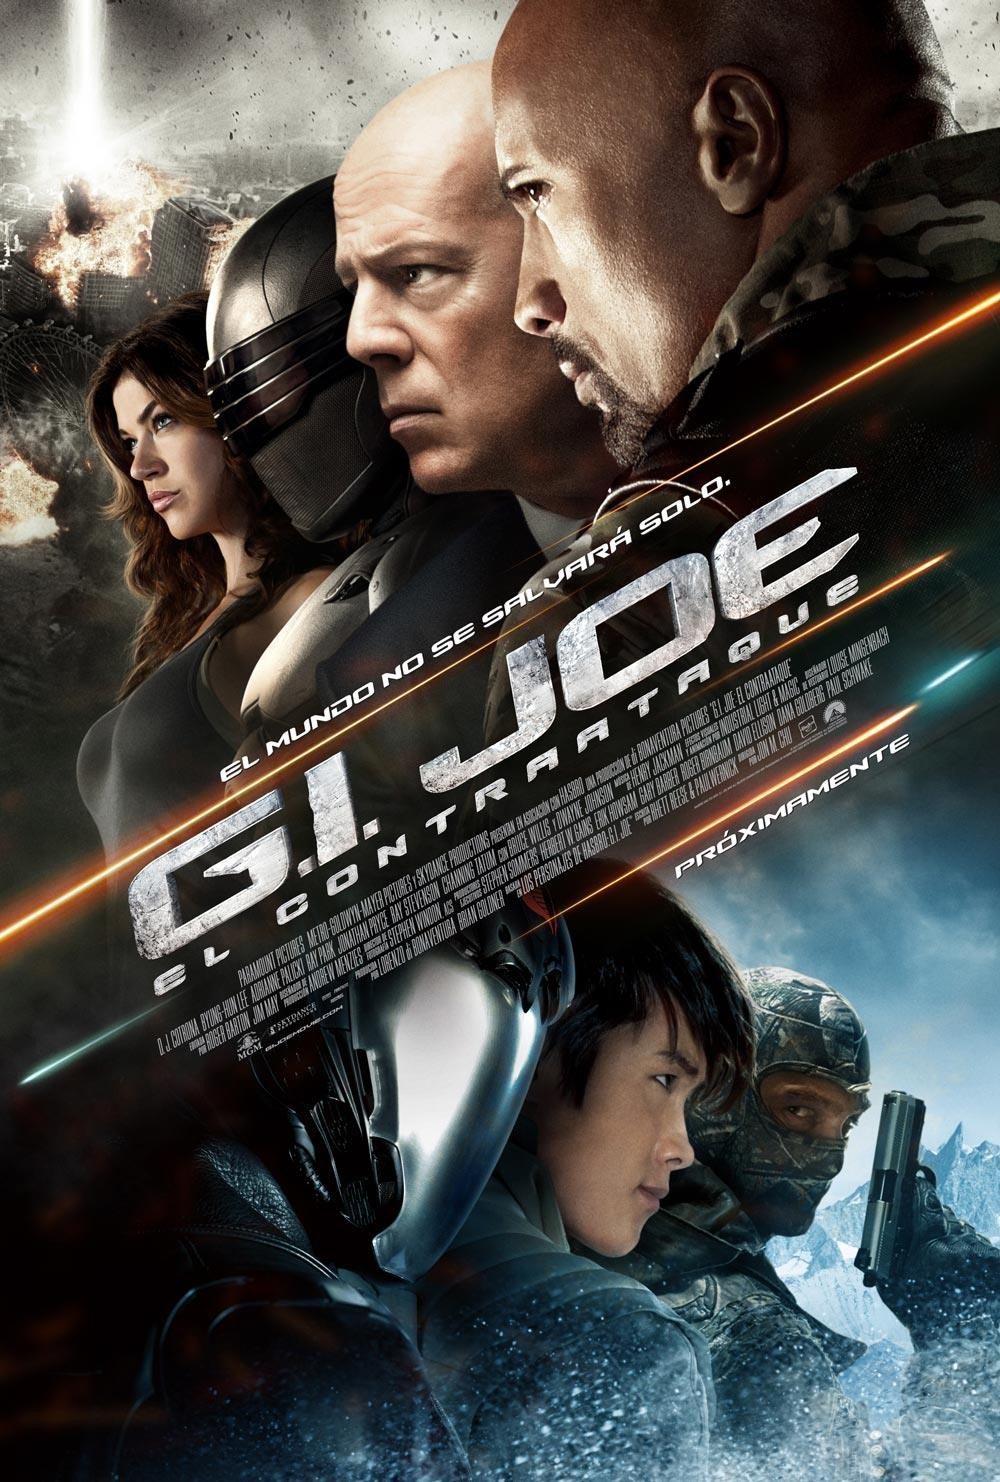 gi_joe_retaliation_ver20_xlg.jpg